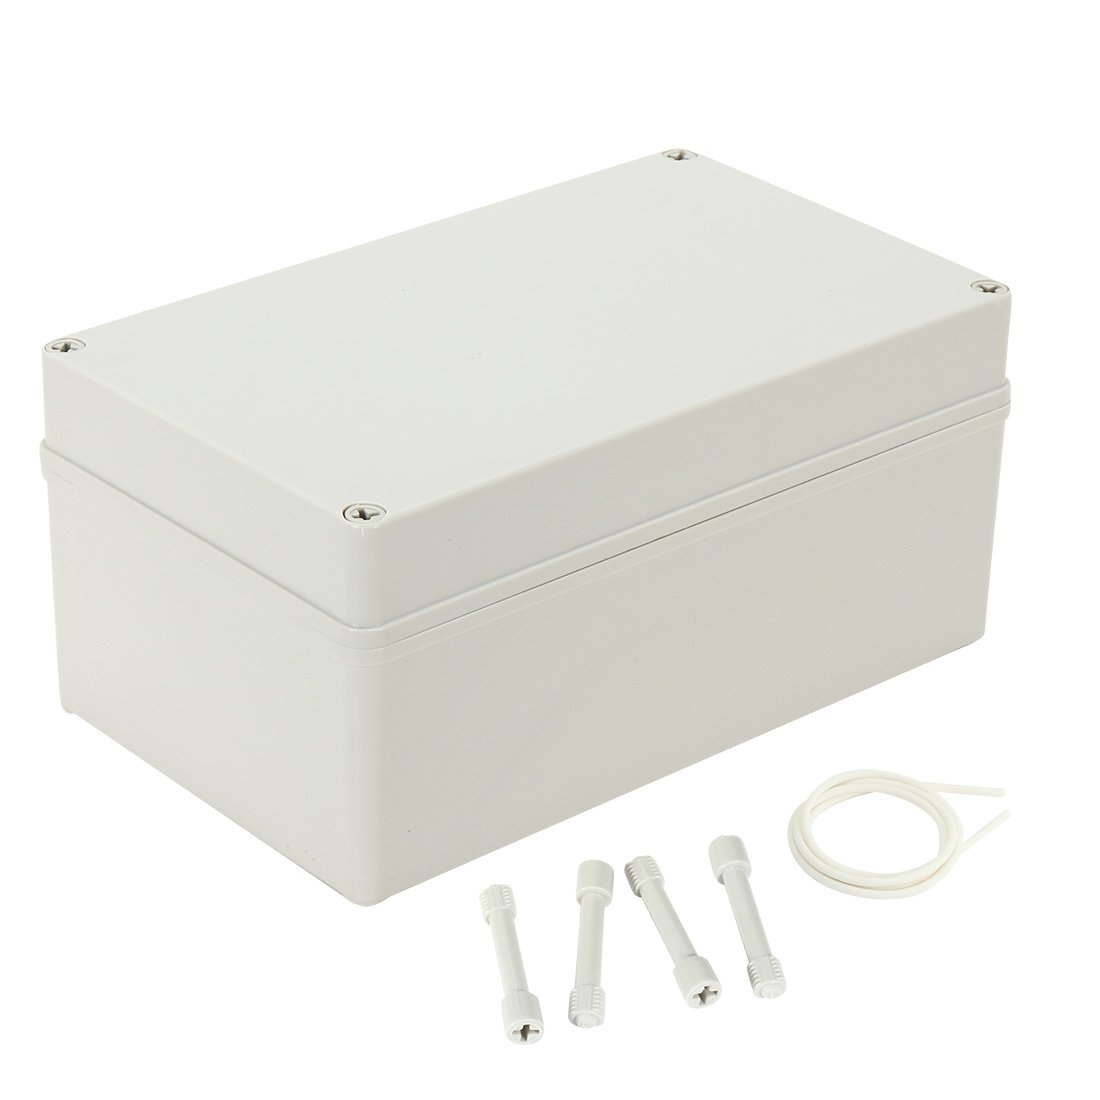 uxcell 9.76''x5.82''x4.53''(248mmx148mmx115mm) ABS Dustproof IP65 Junction Box Universal Electric Project Enclosure